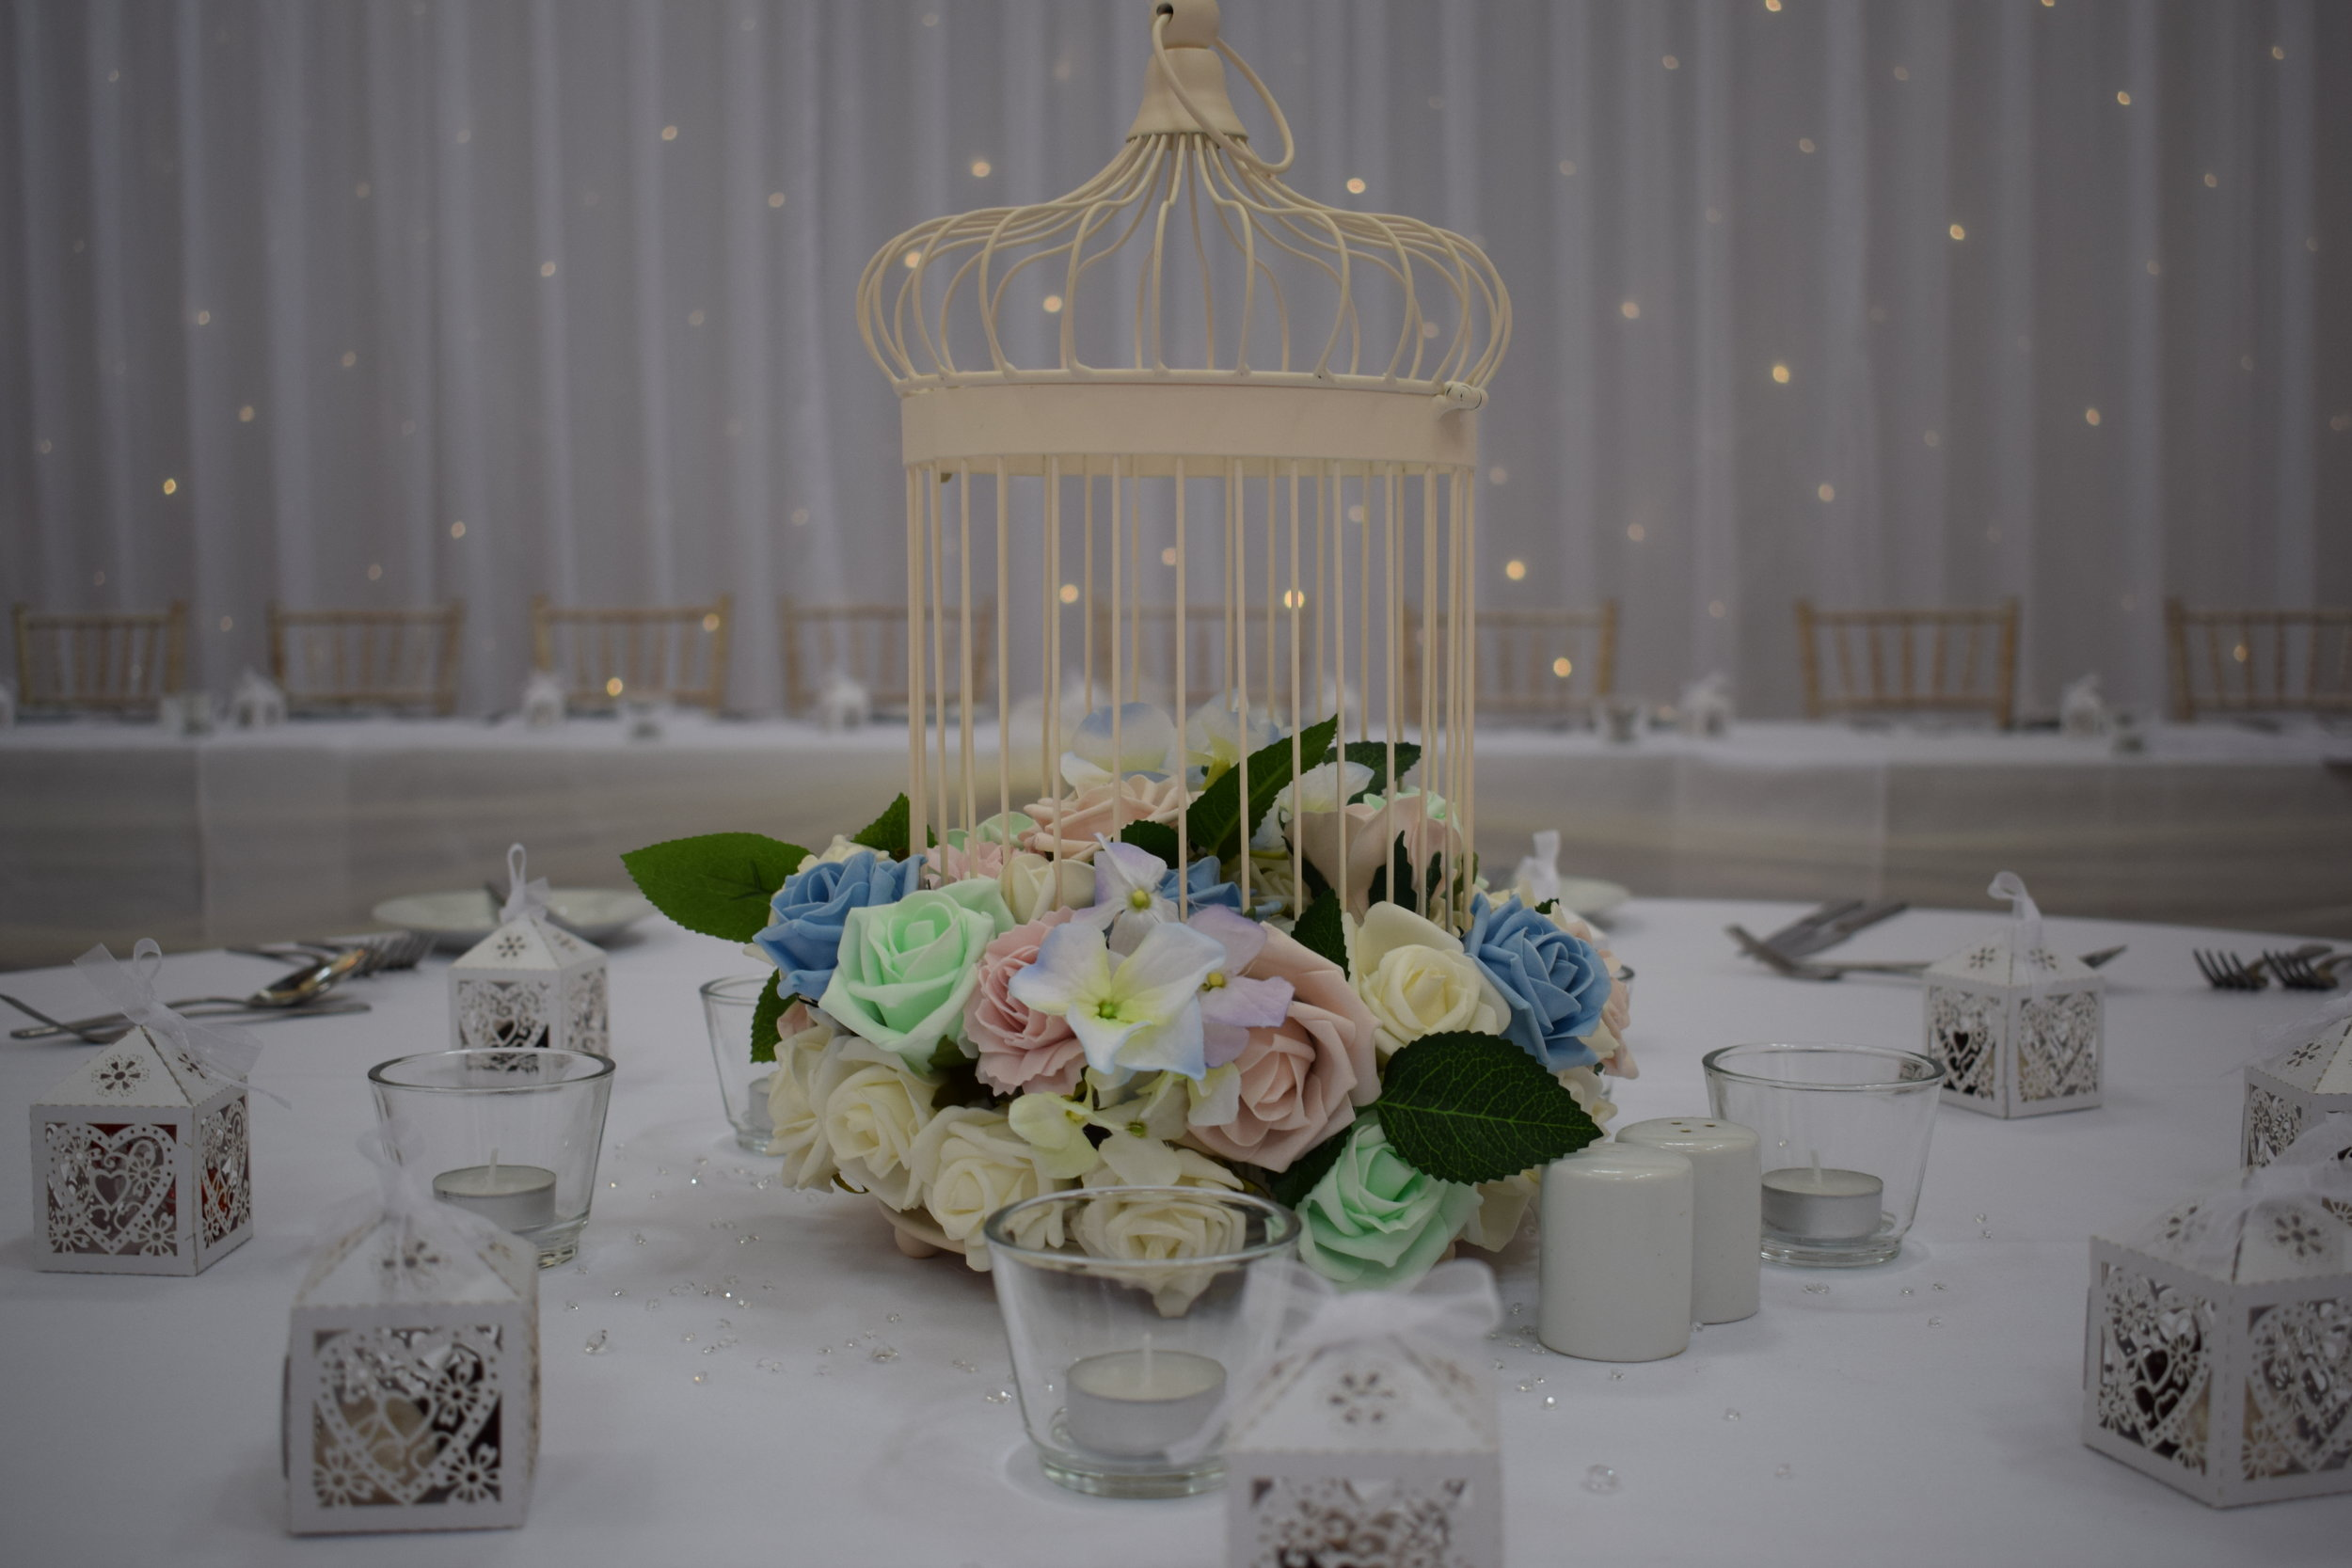 Wedding Centrepiece Hire Nottingham, Derby, East Midlands